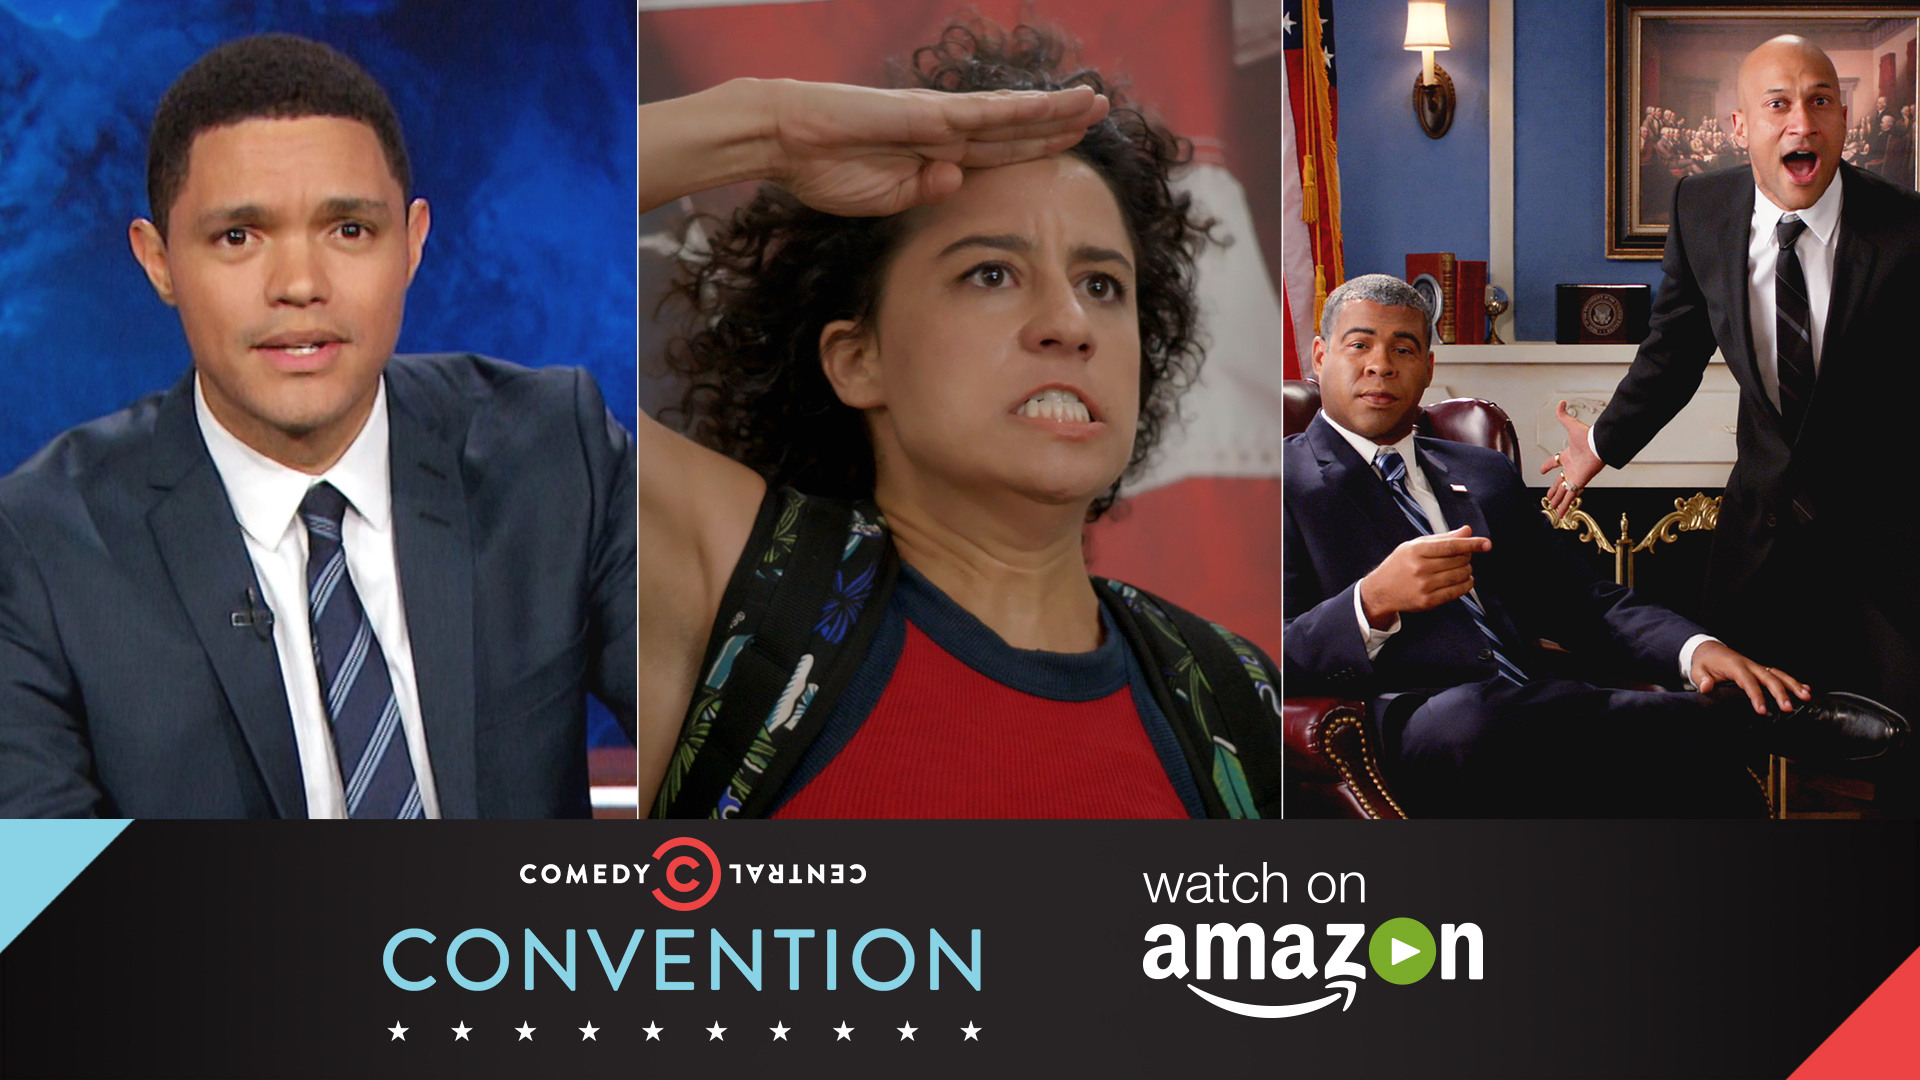 TIME TO BINGE - COMEDY CENTRAL CONVENTION